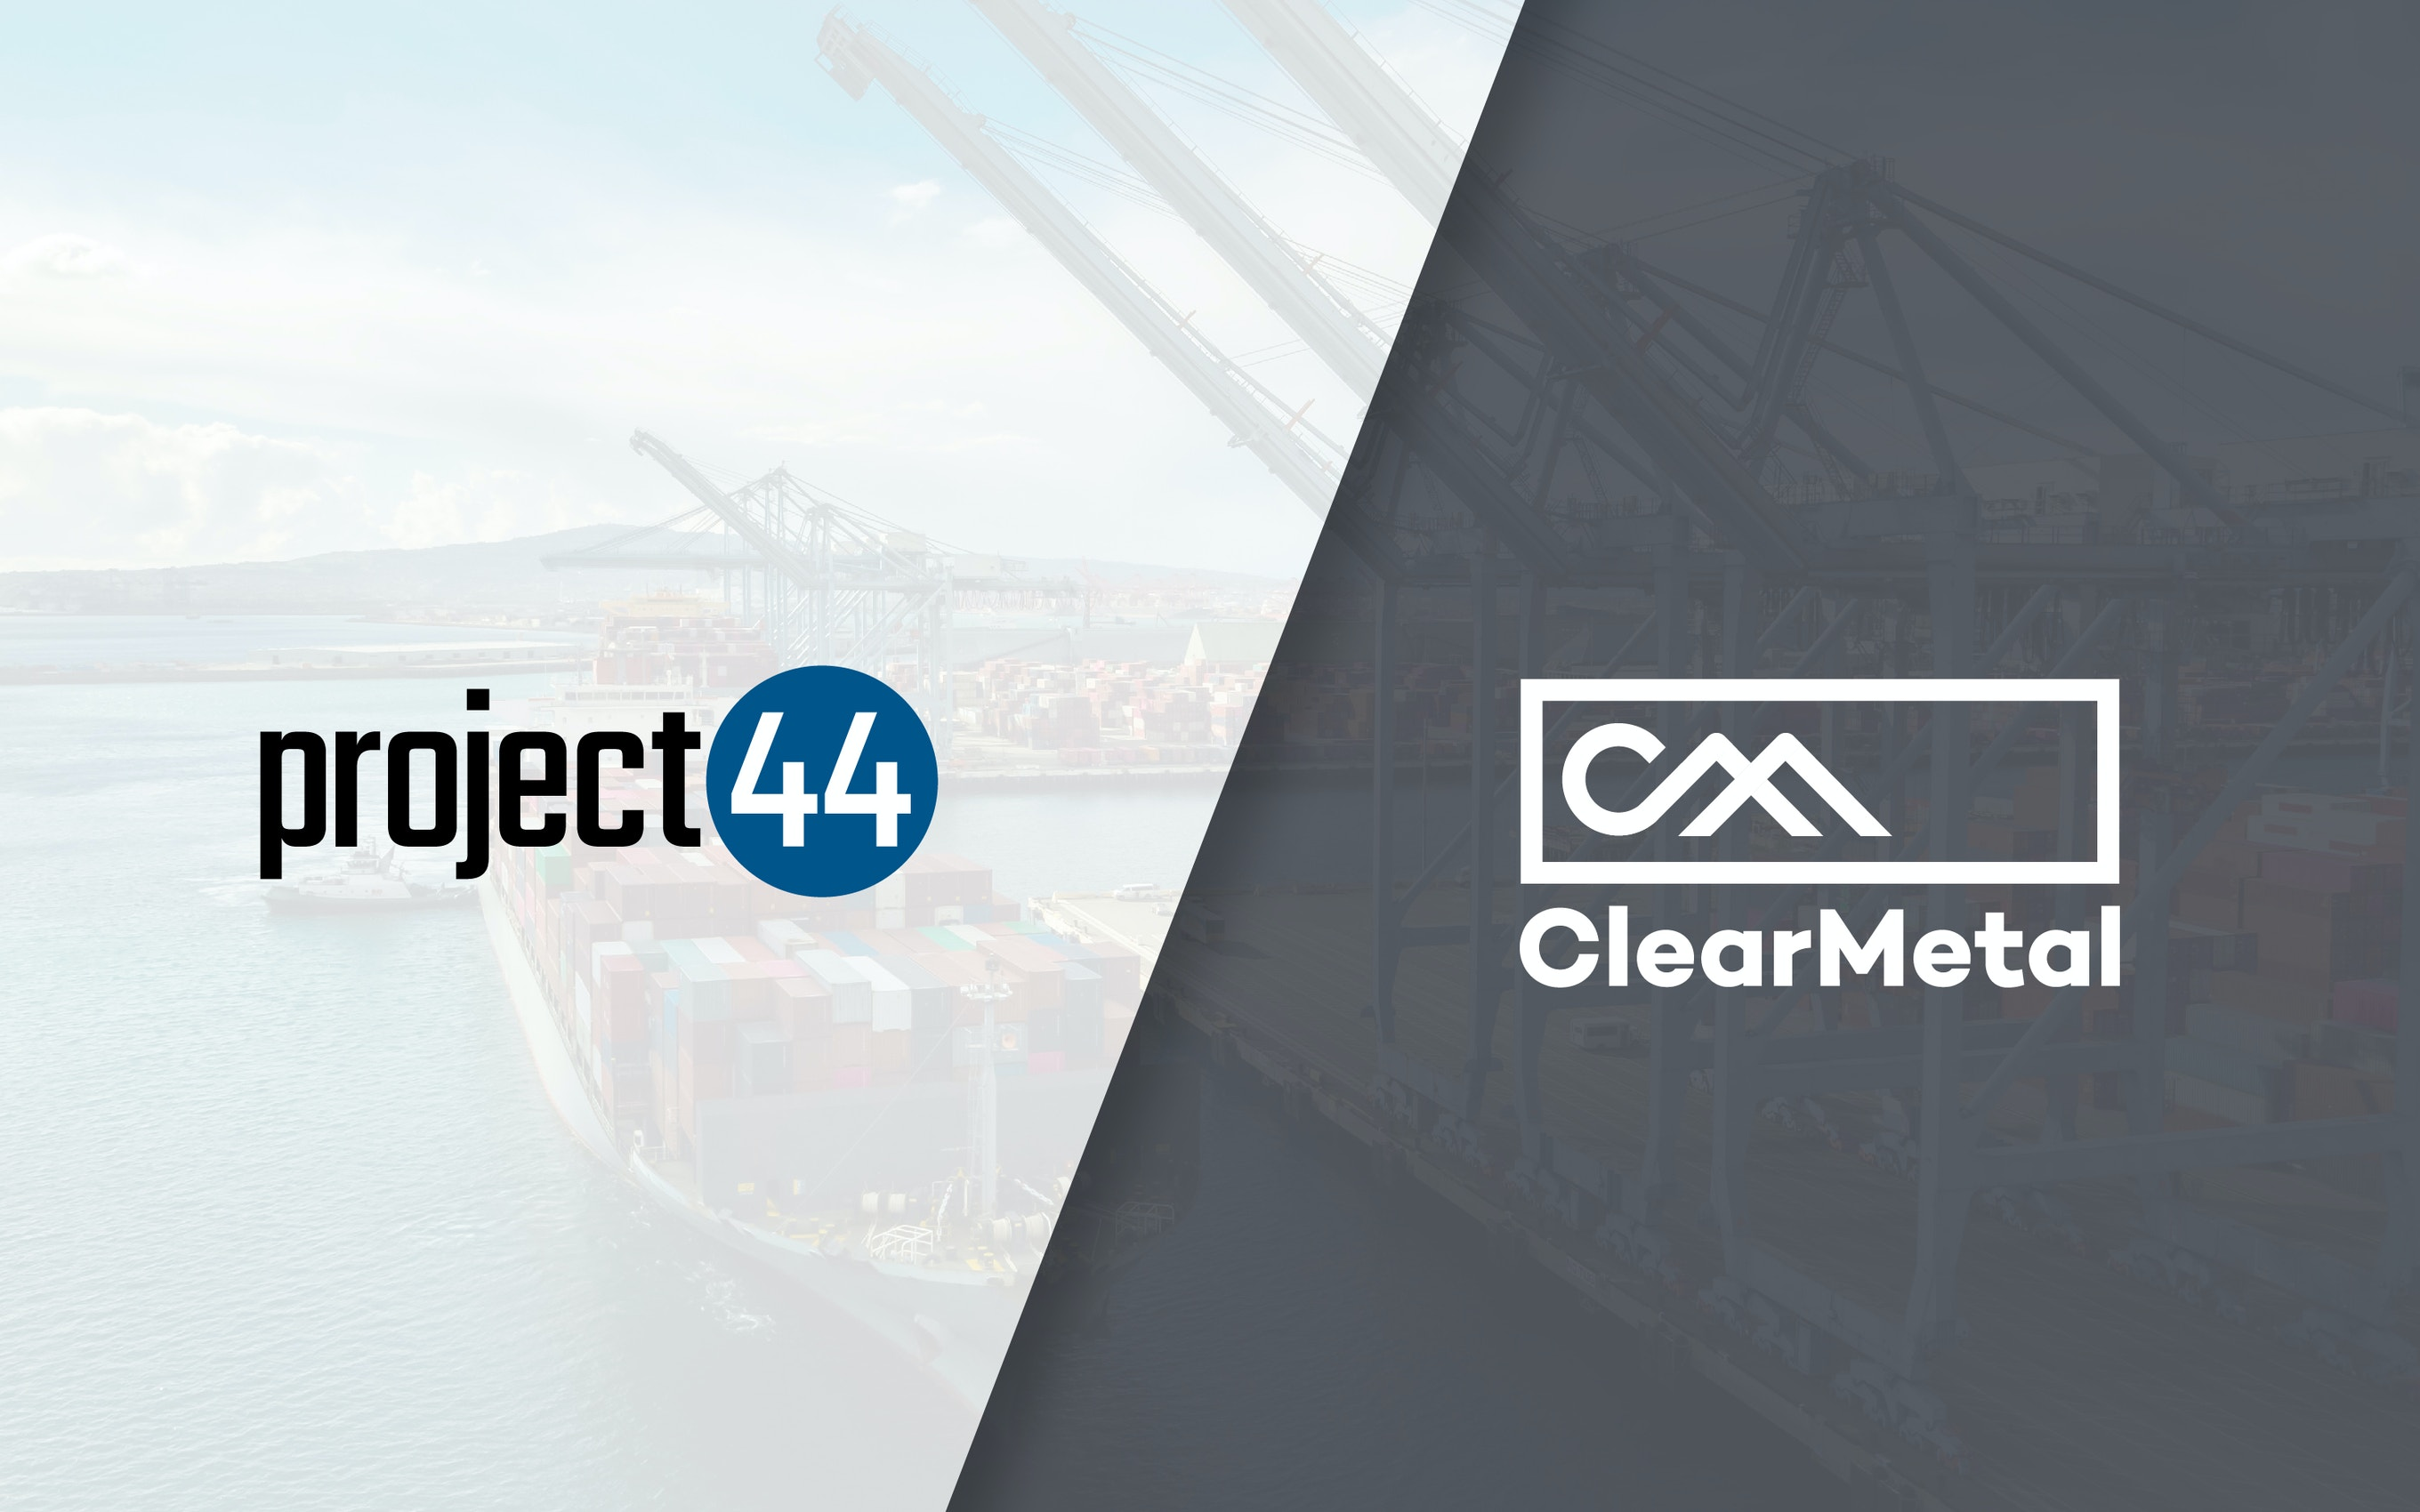 The Daily Dash: project44's latest acquisition